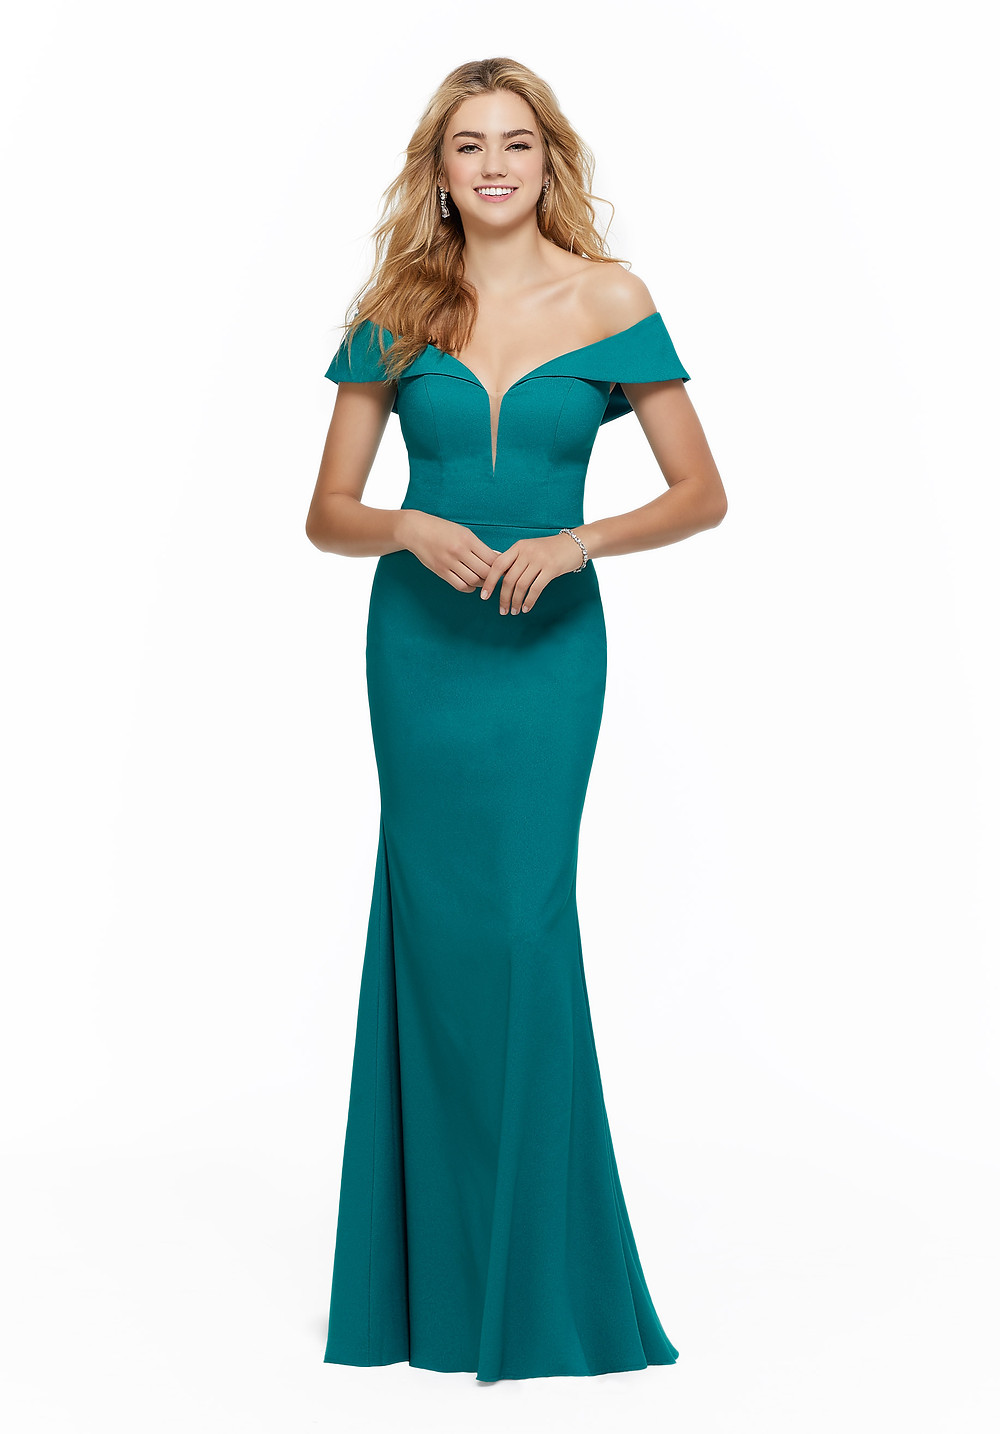 Morilee Bridesmaid Dress St. Louis